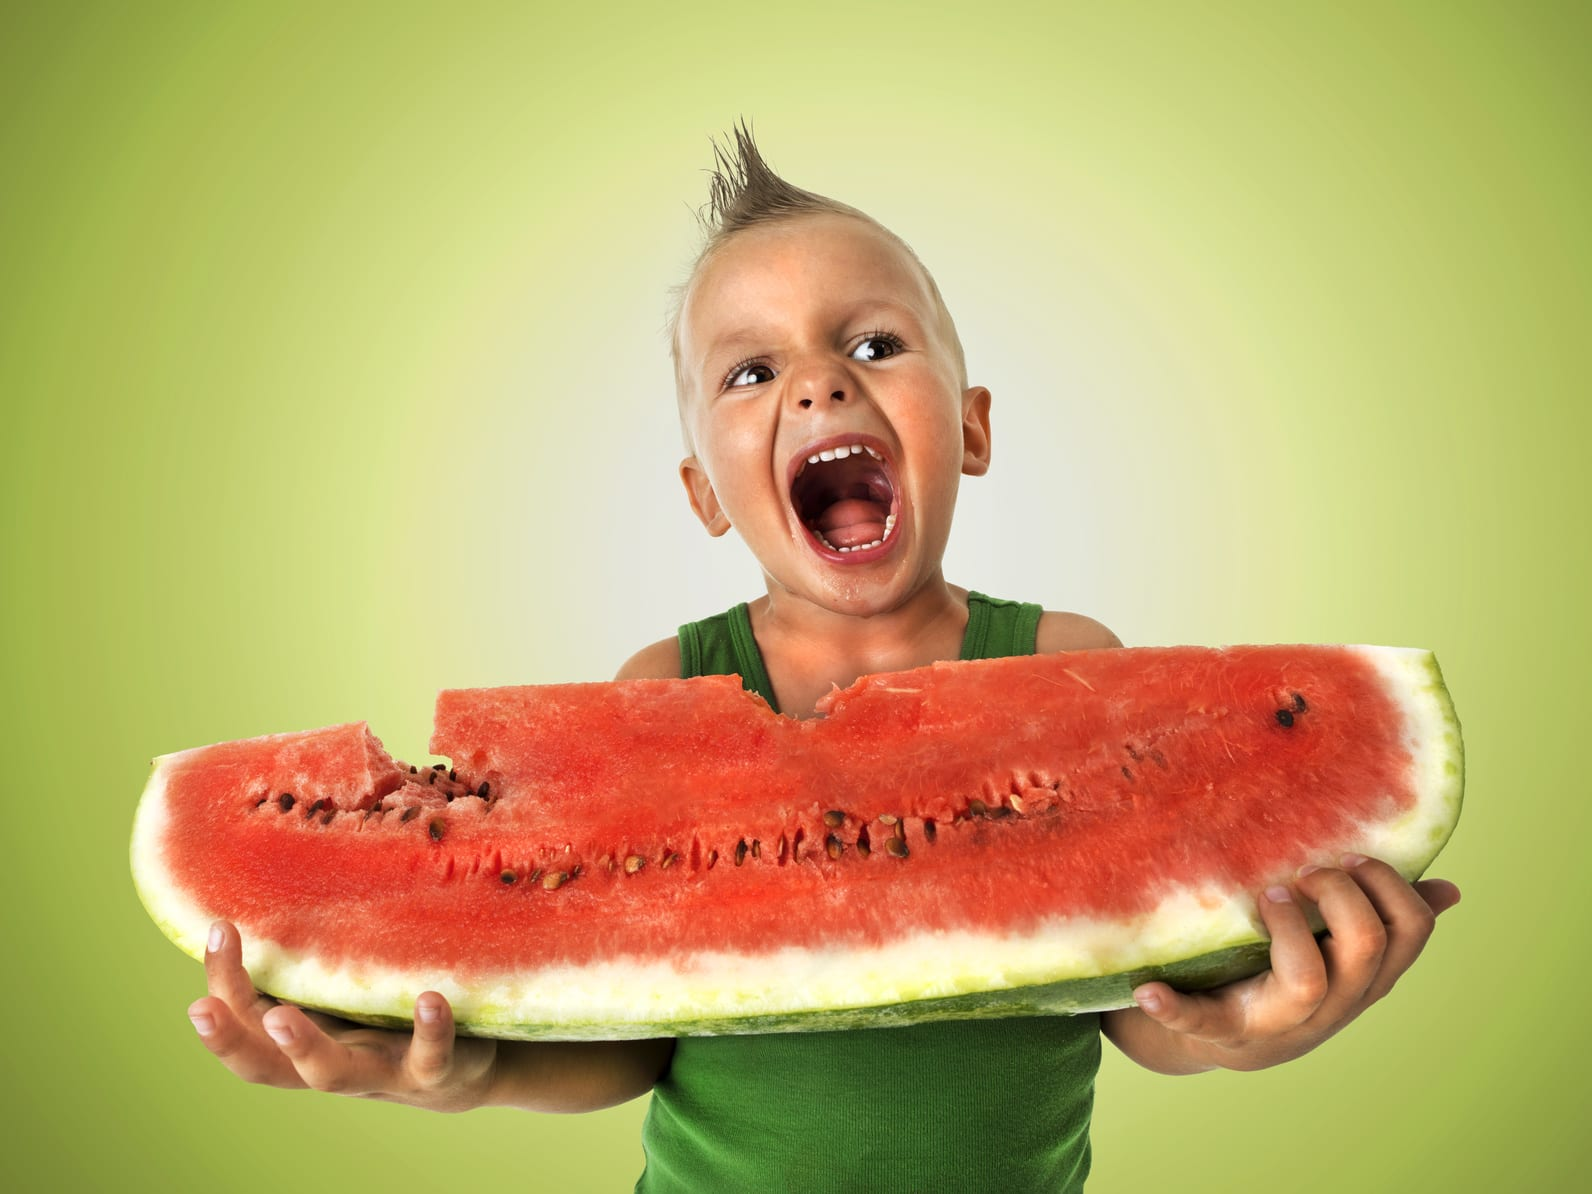 how to lose 5 pounds overnight- eat a large serving of watermelon